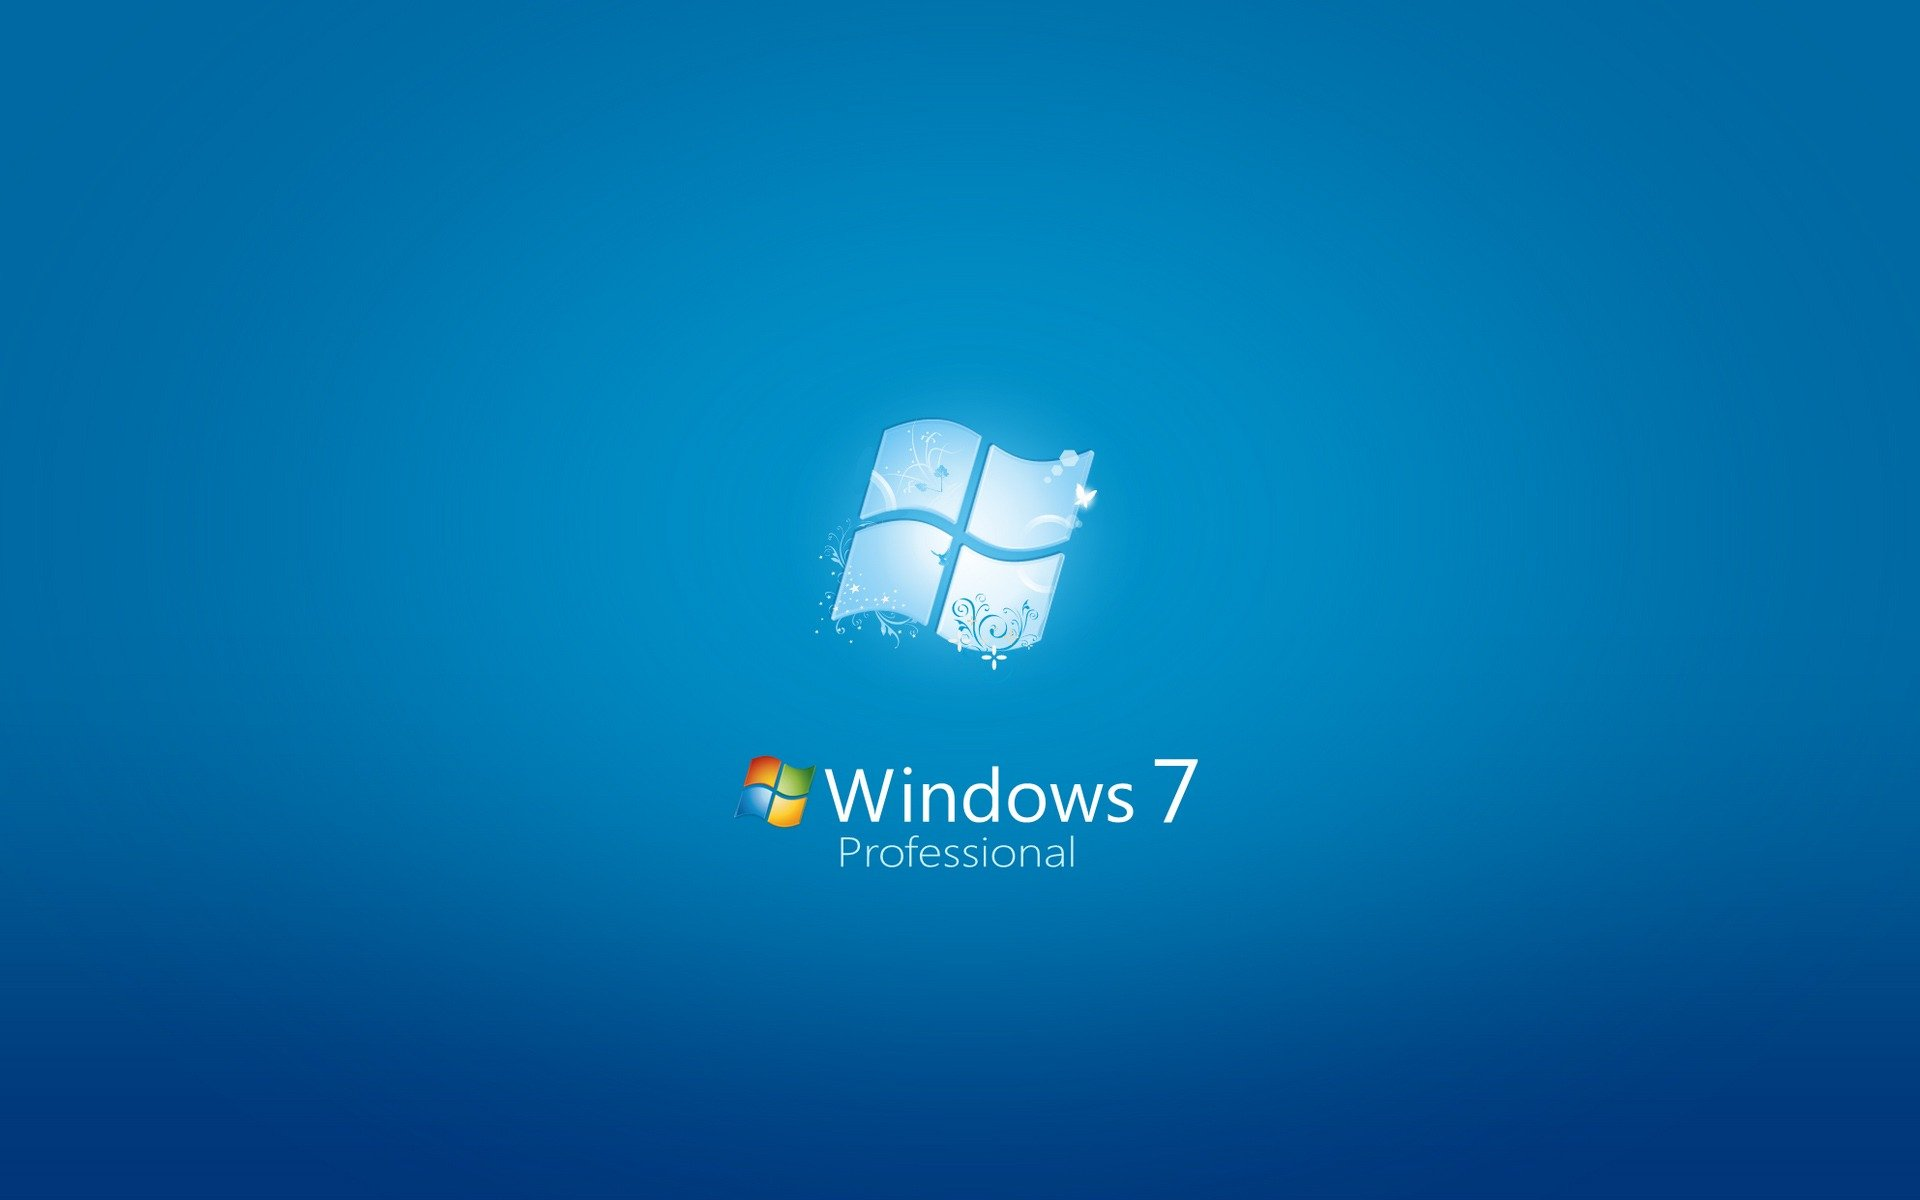 Windows 7 Professional Wallpapers HD Wallpapers 1920x1200